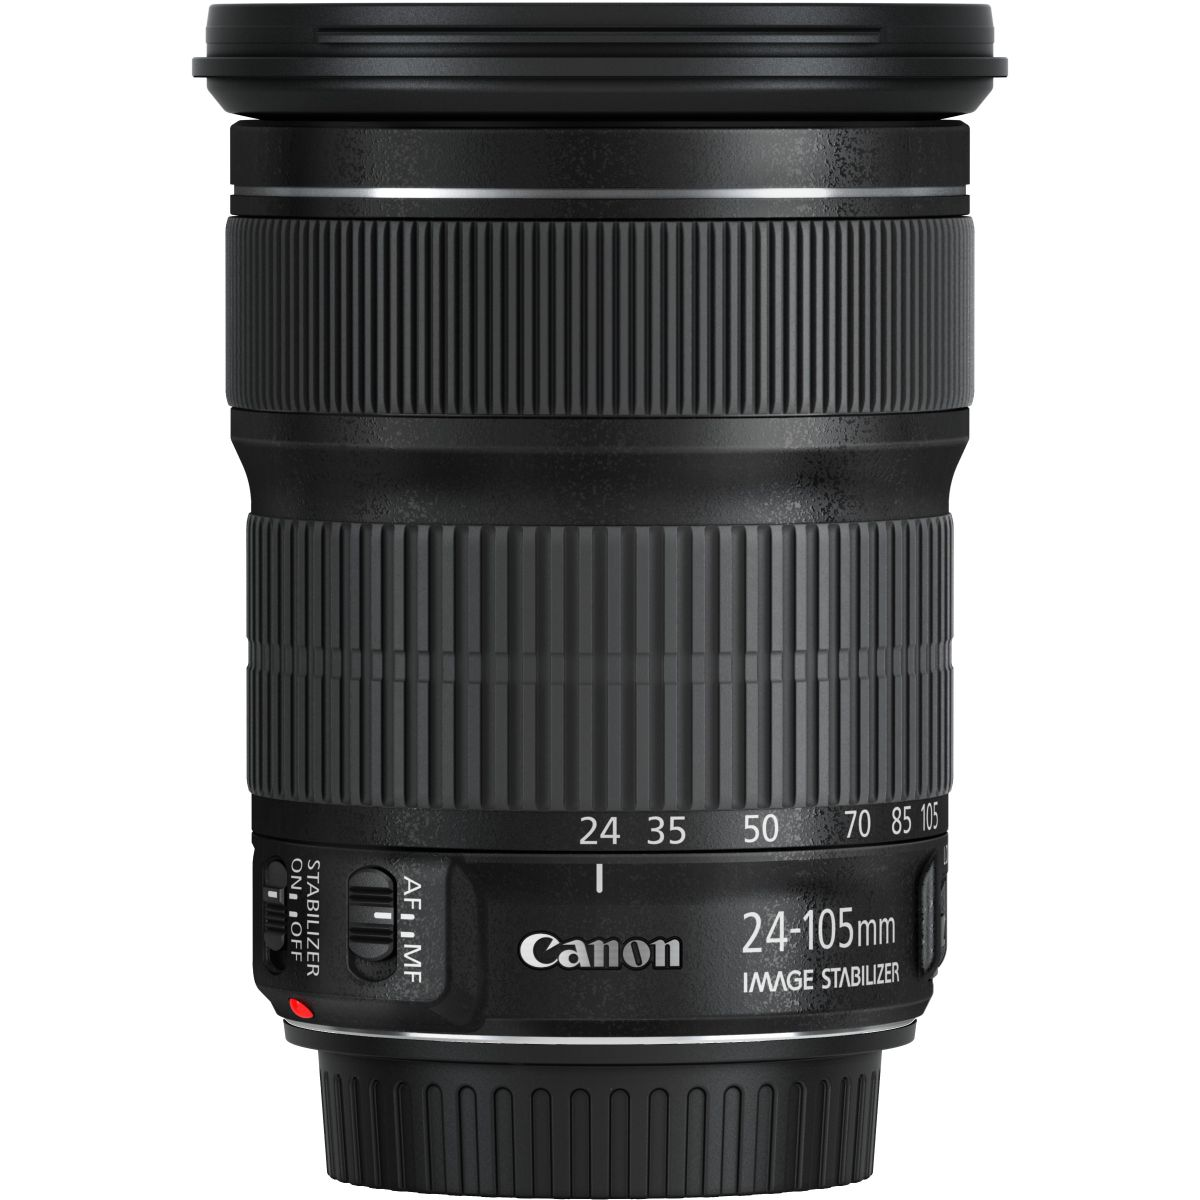 Objectif CANON EF 24-105mm f/3,5-5,6 IS STM